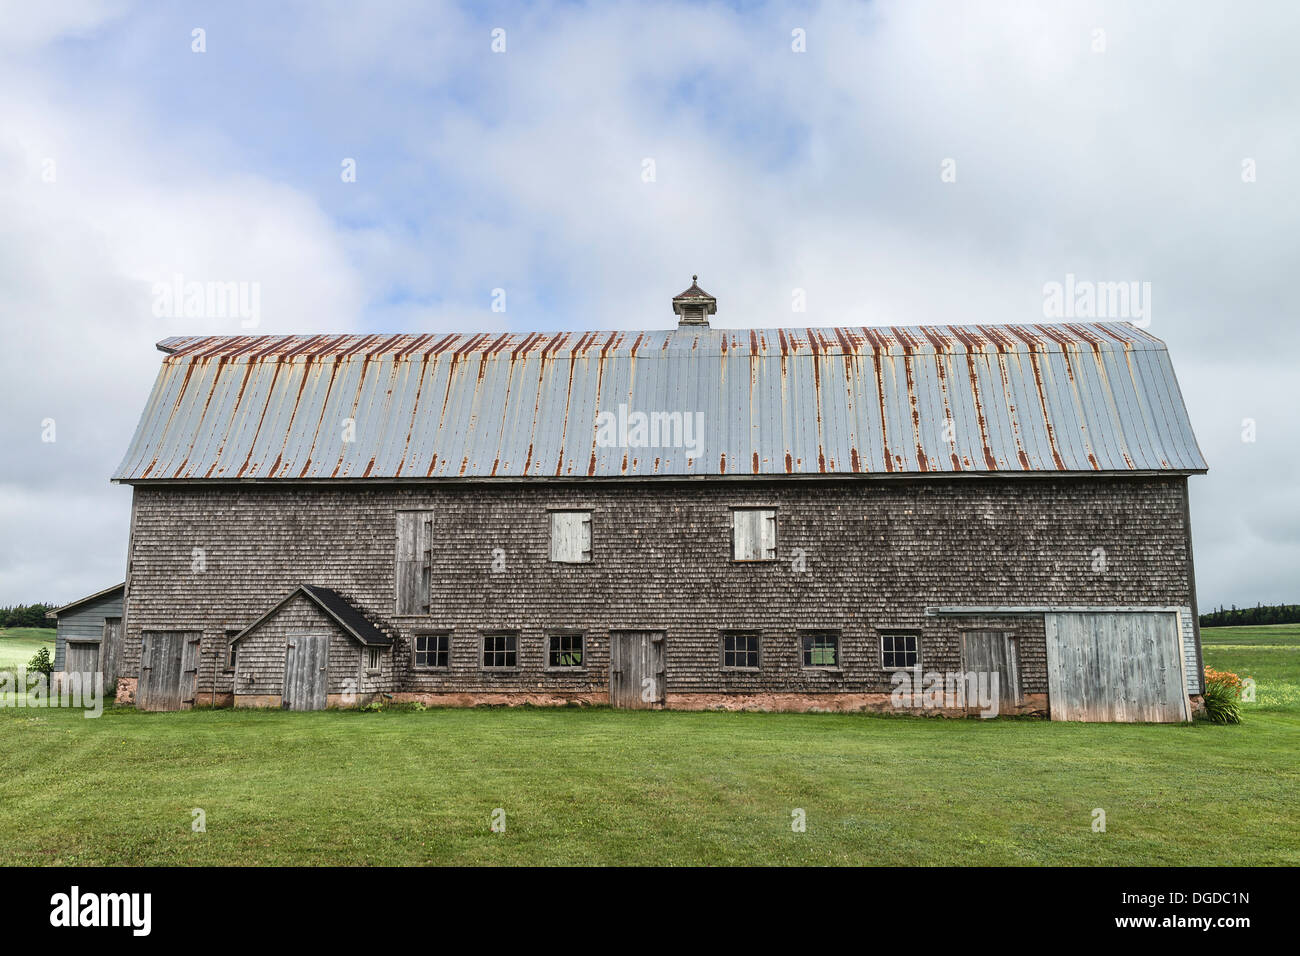 Old weathered shake shingle sided barn with rusted metal roof Prince Edward Island, one of the Maritime Provinces in Canada. - Stock Image